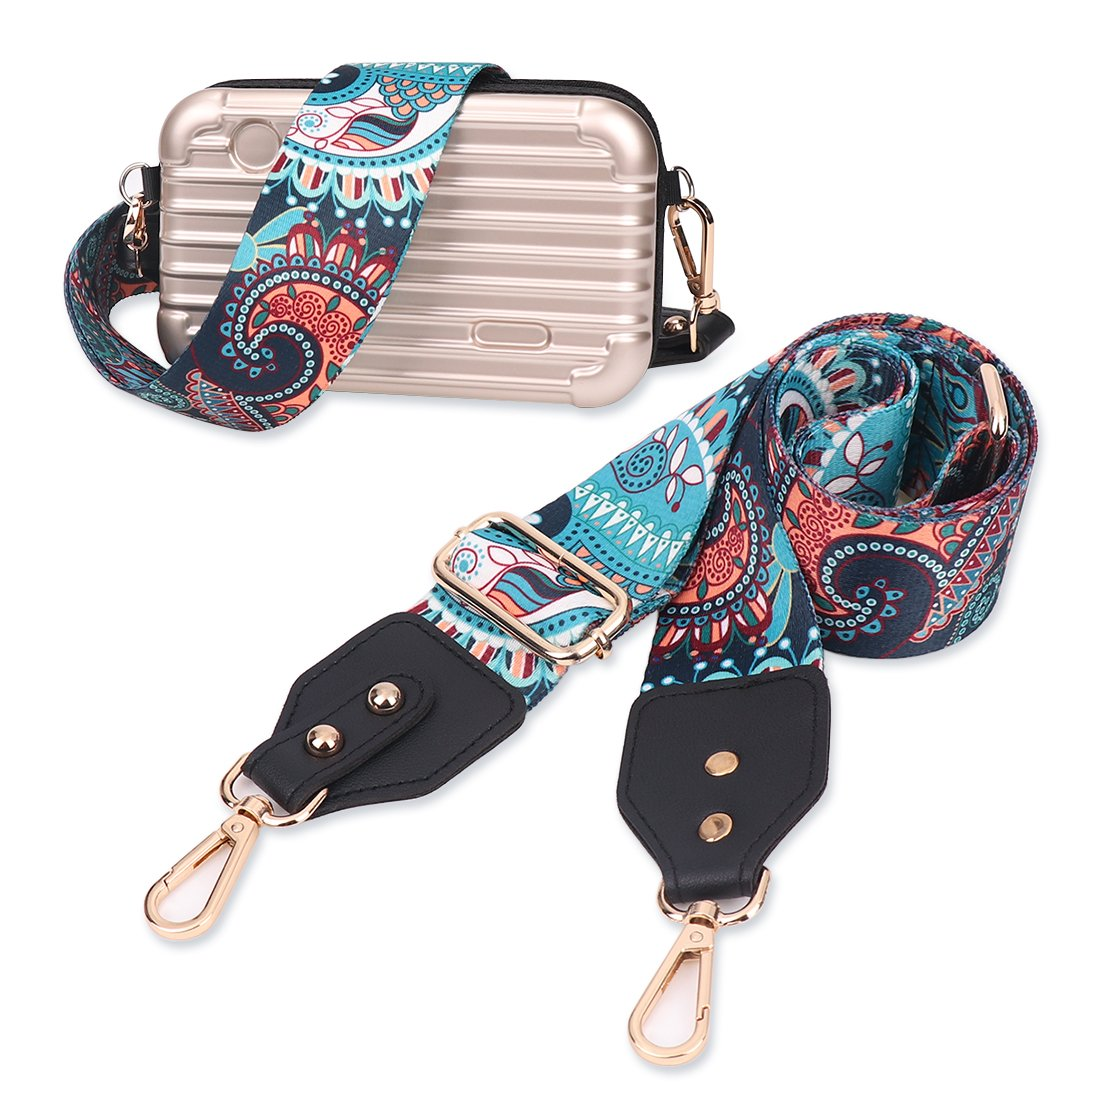 Louty 2'' Wide Adjustable Handbag Purse Strap Replacement Guitar Style Multicolor Canvas Crossbody Bag Straps by LOUTY (Image #6)